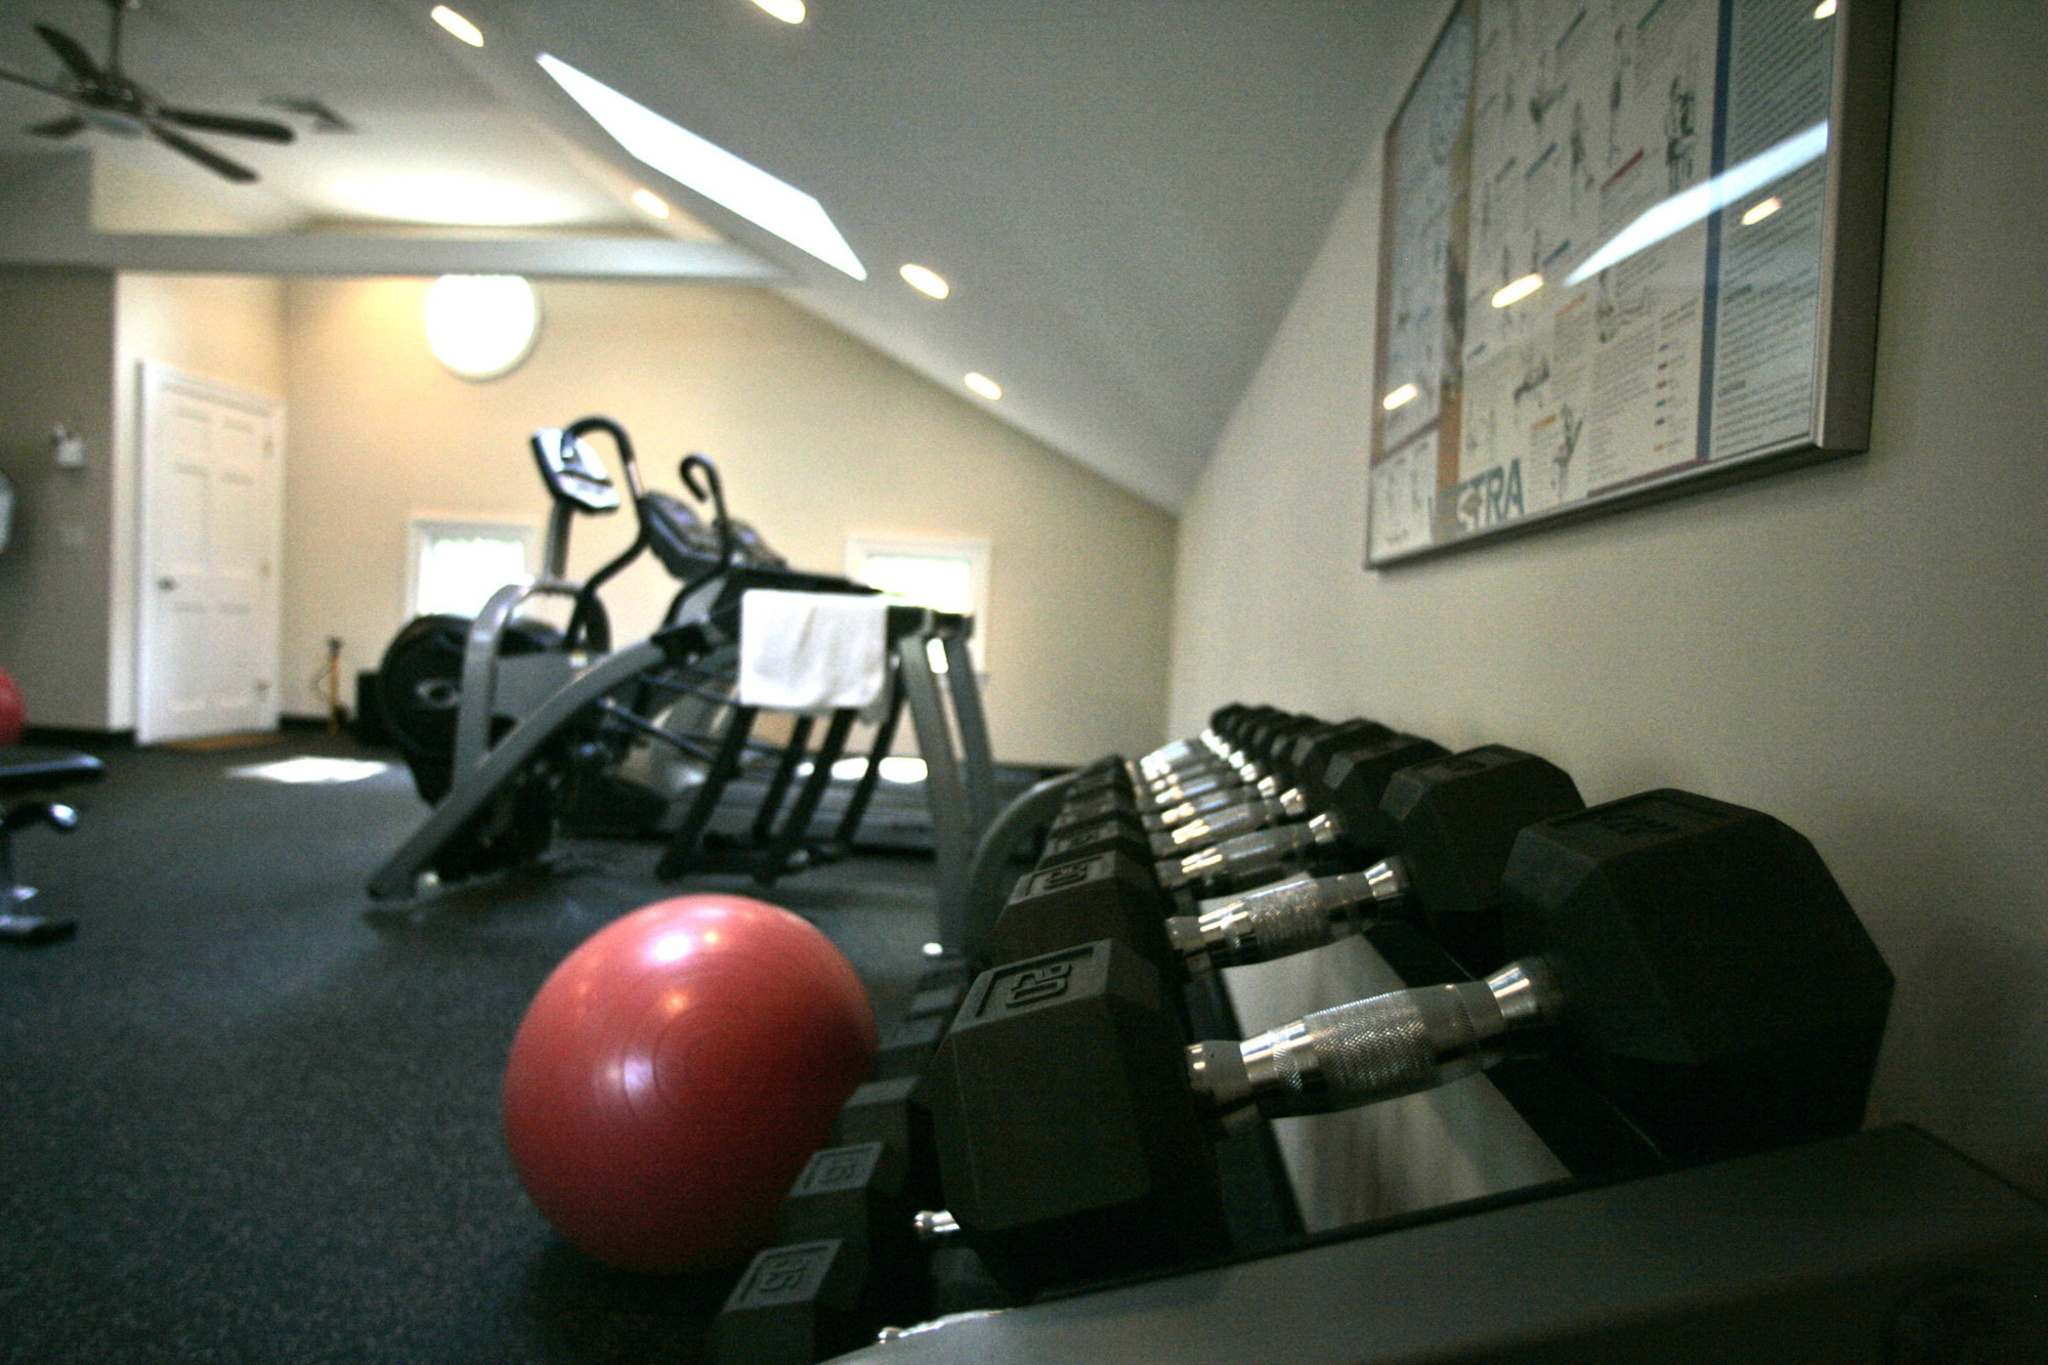 A new survey suggests that house buyers are interested in homes that have exercise rooms since the COVID-19 pandemic forced most gyms to shut down or strictly limit attendance. (Frank Franklin II / The Associated Press files)</p>